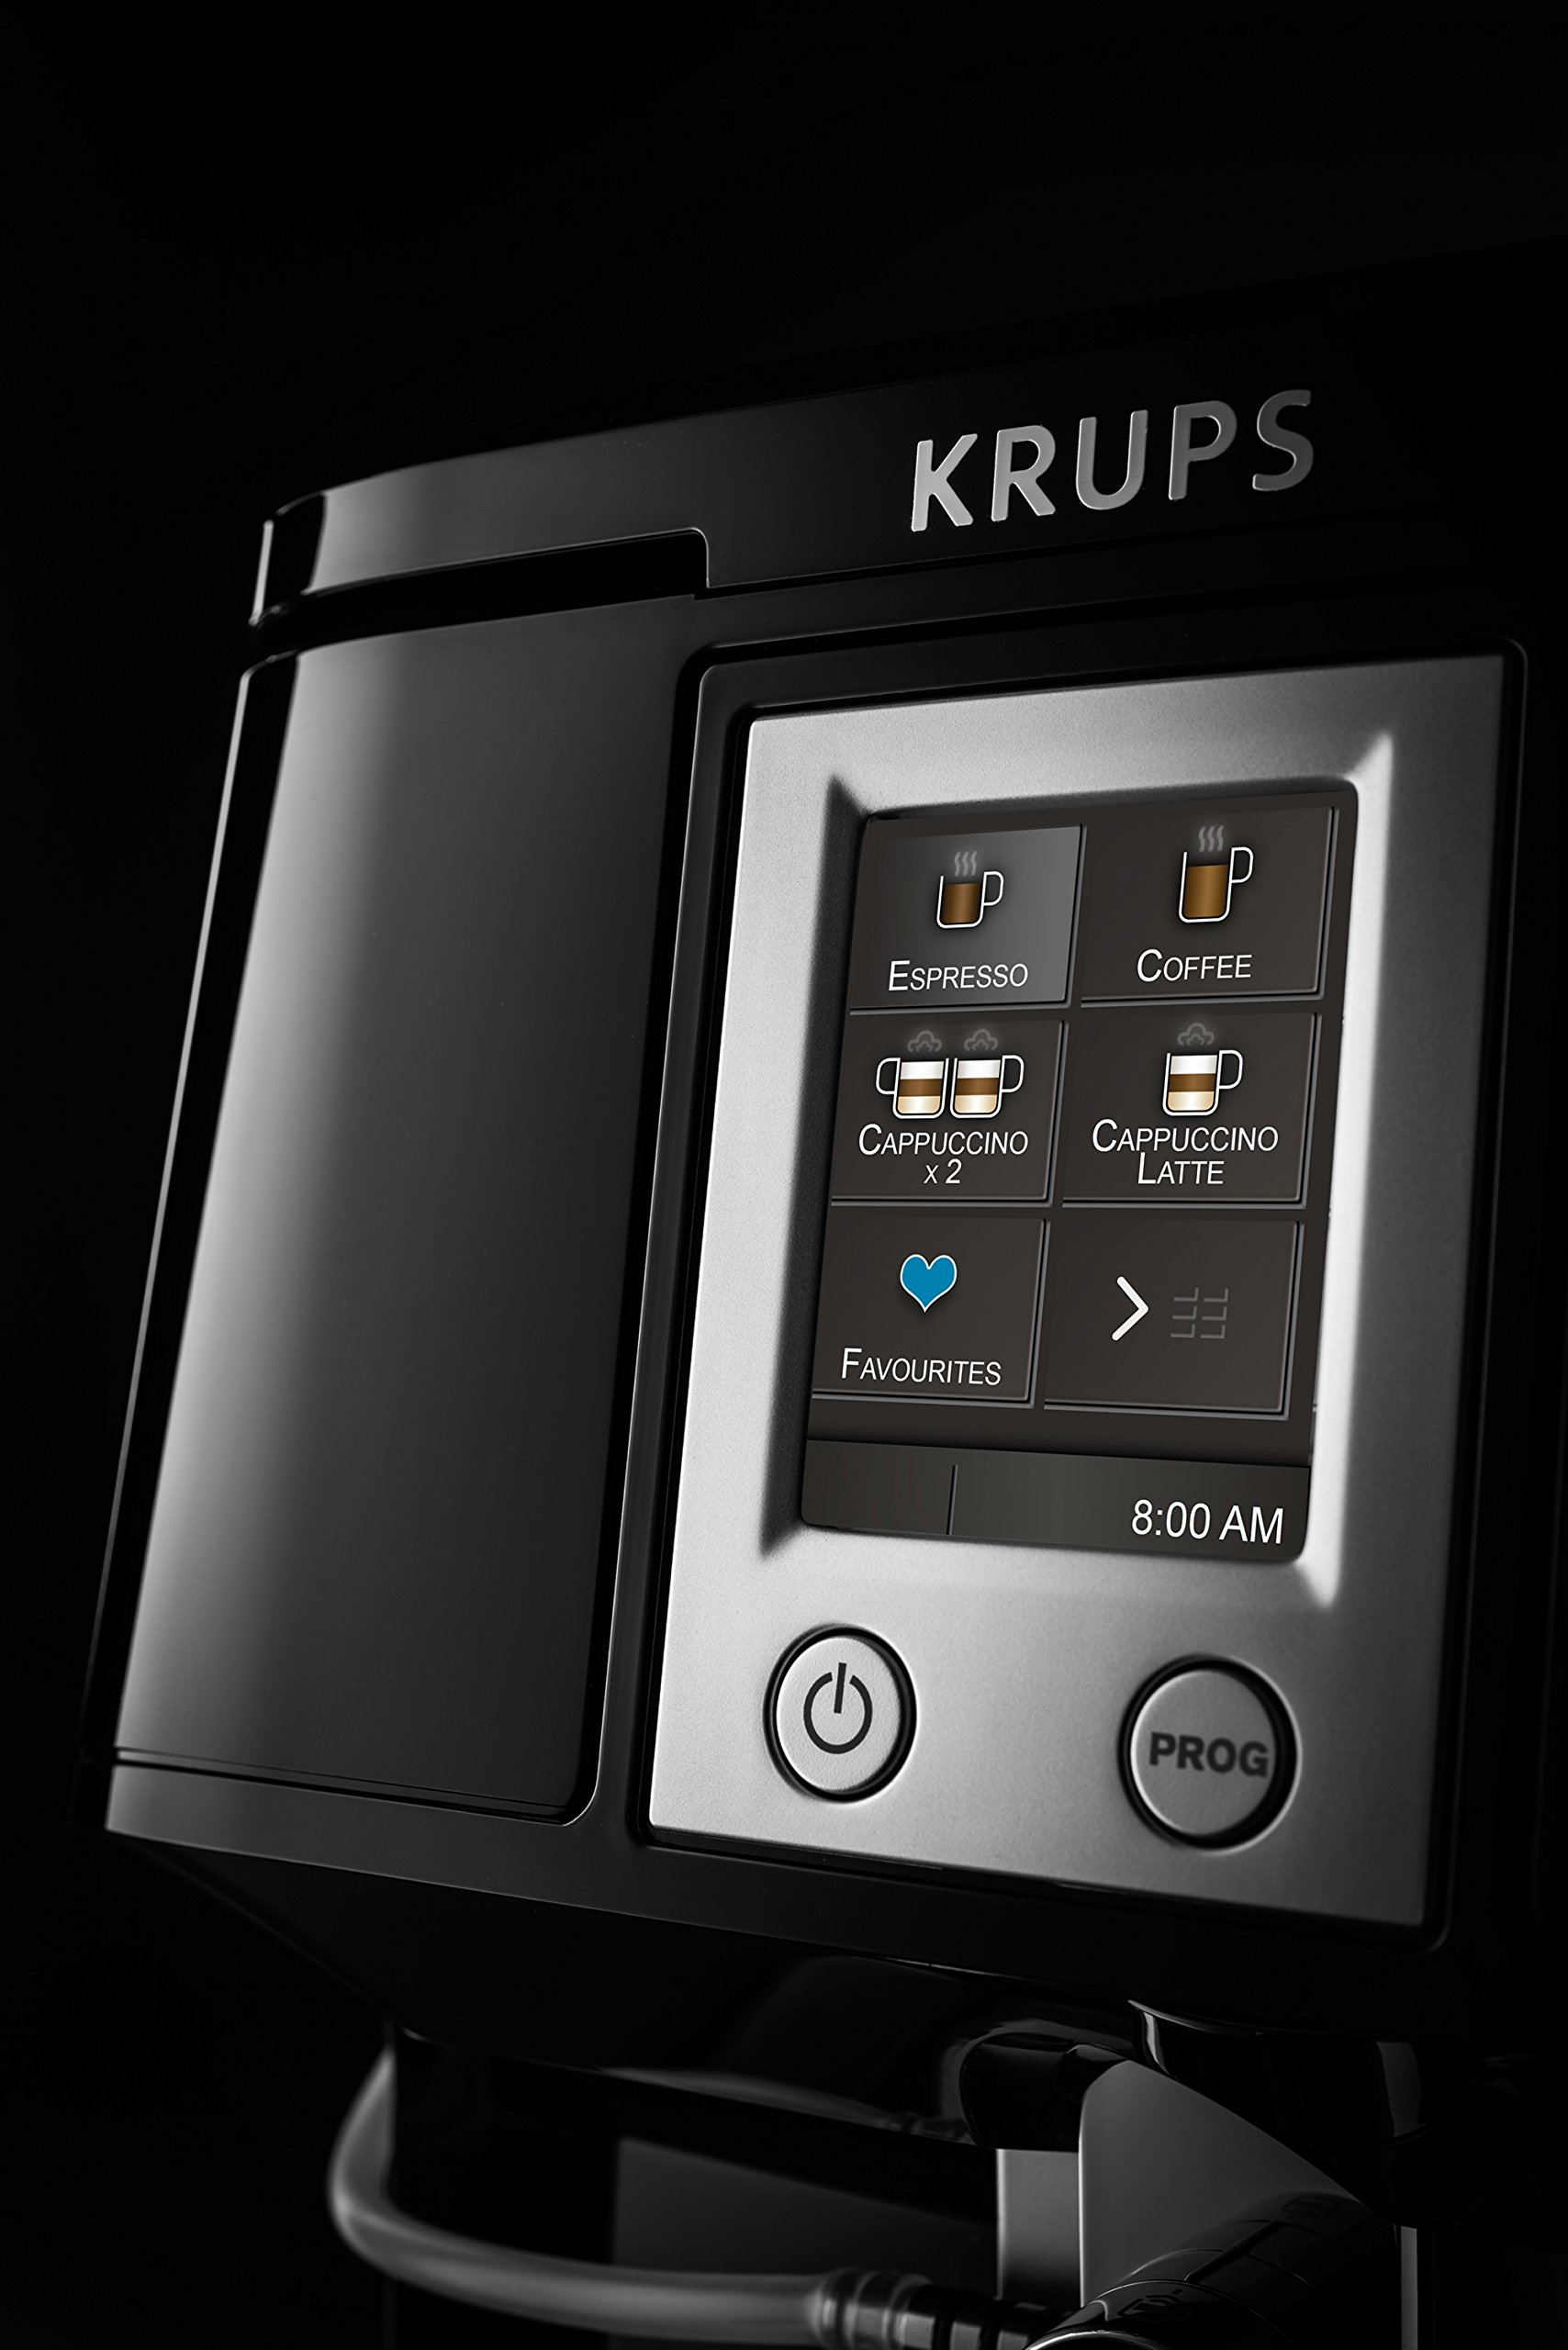 Krups-EA8808-Kaffeevollautomat-Two-in-One-Touch-Funktion-15-bar-Touchscreen-Farbdisplay-Edelstahl-Schwarz